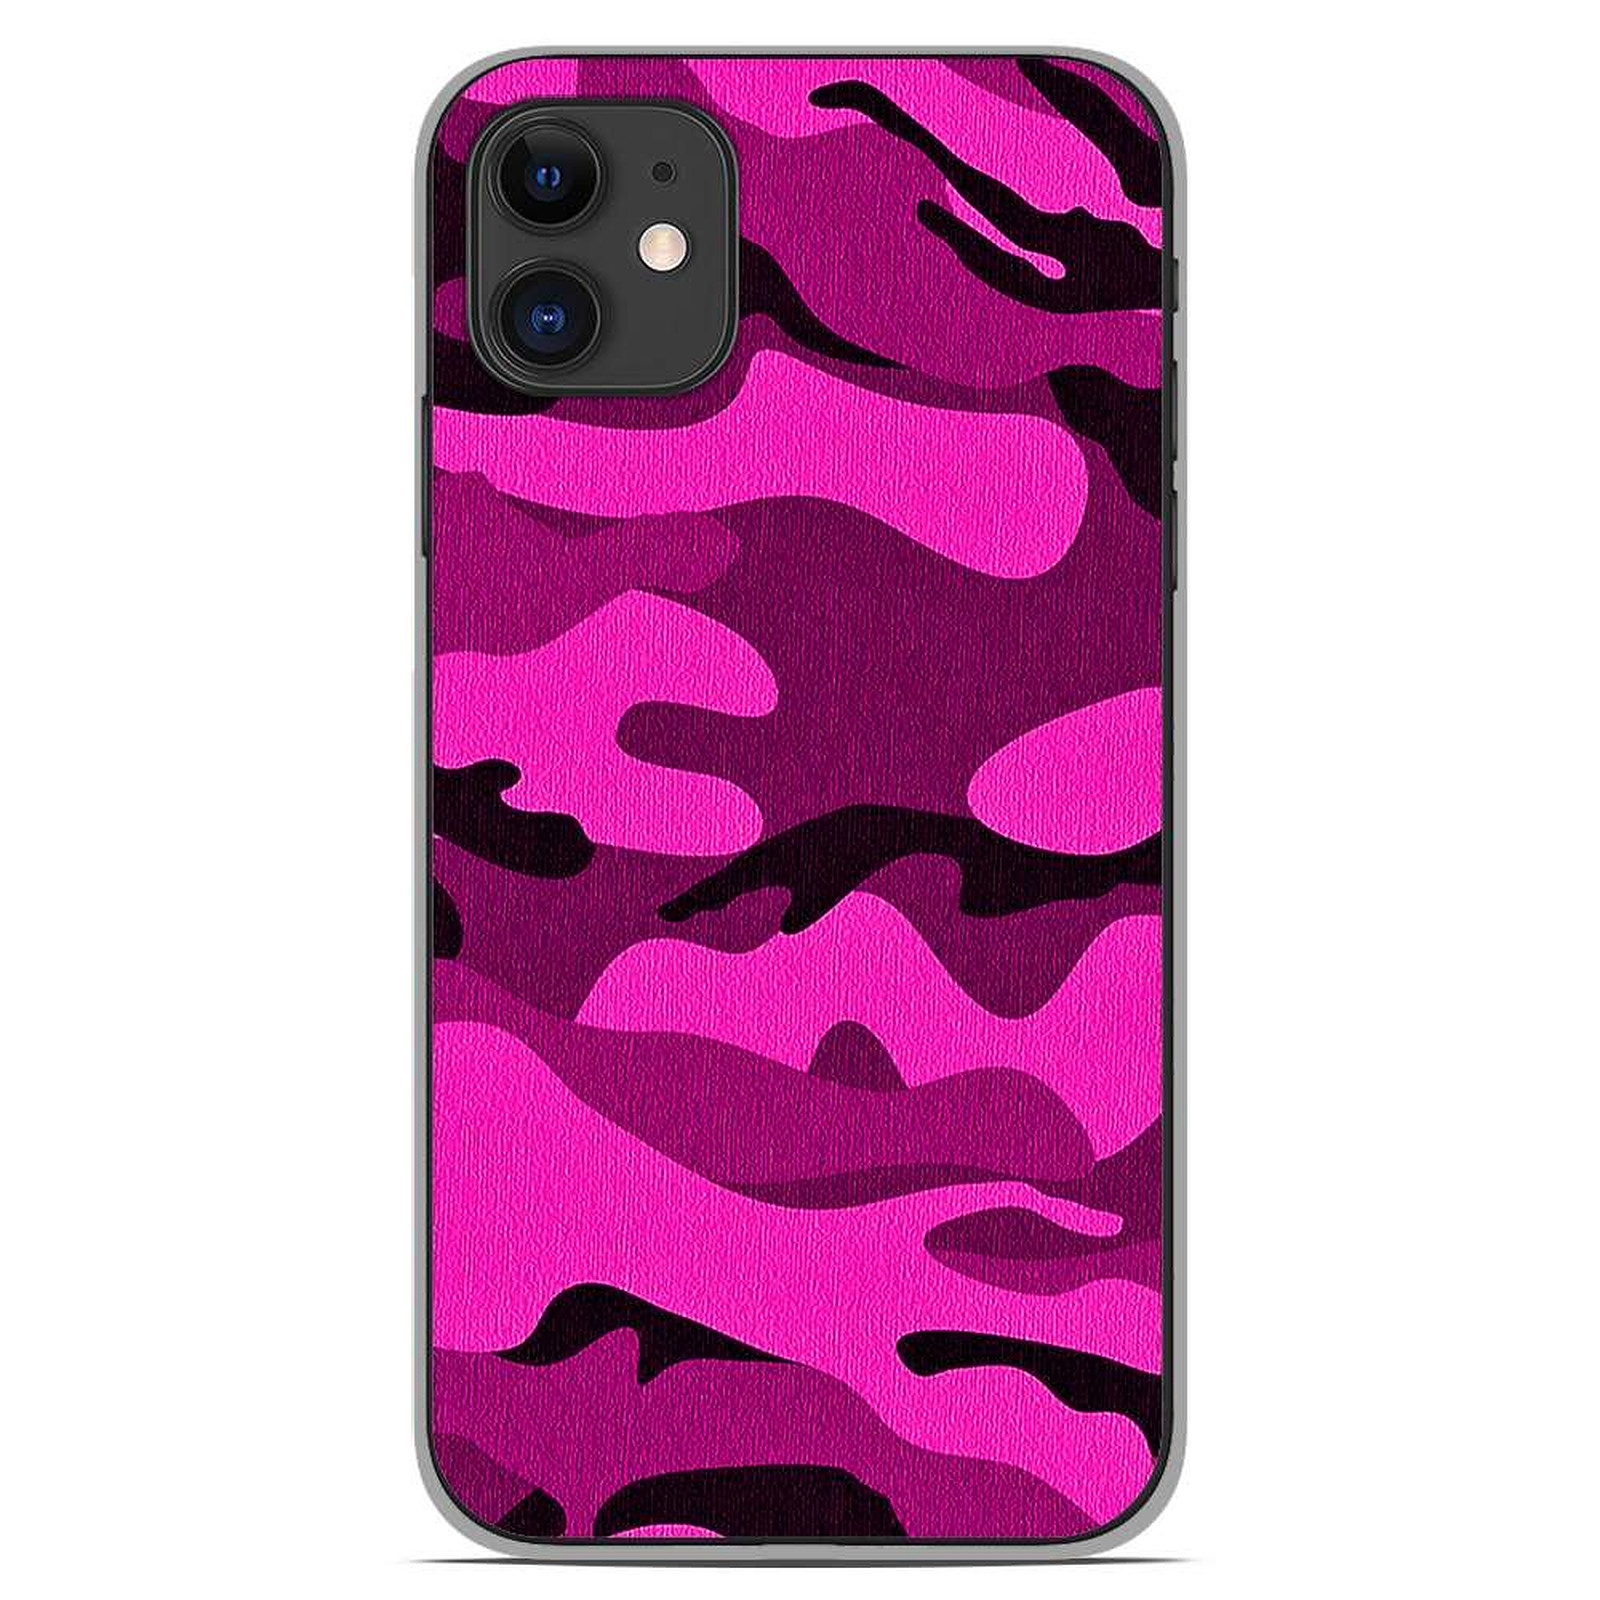 1001 Coques Coque silicone gel Apple iPhone 11 motif Camouflage rose